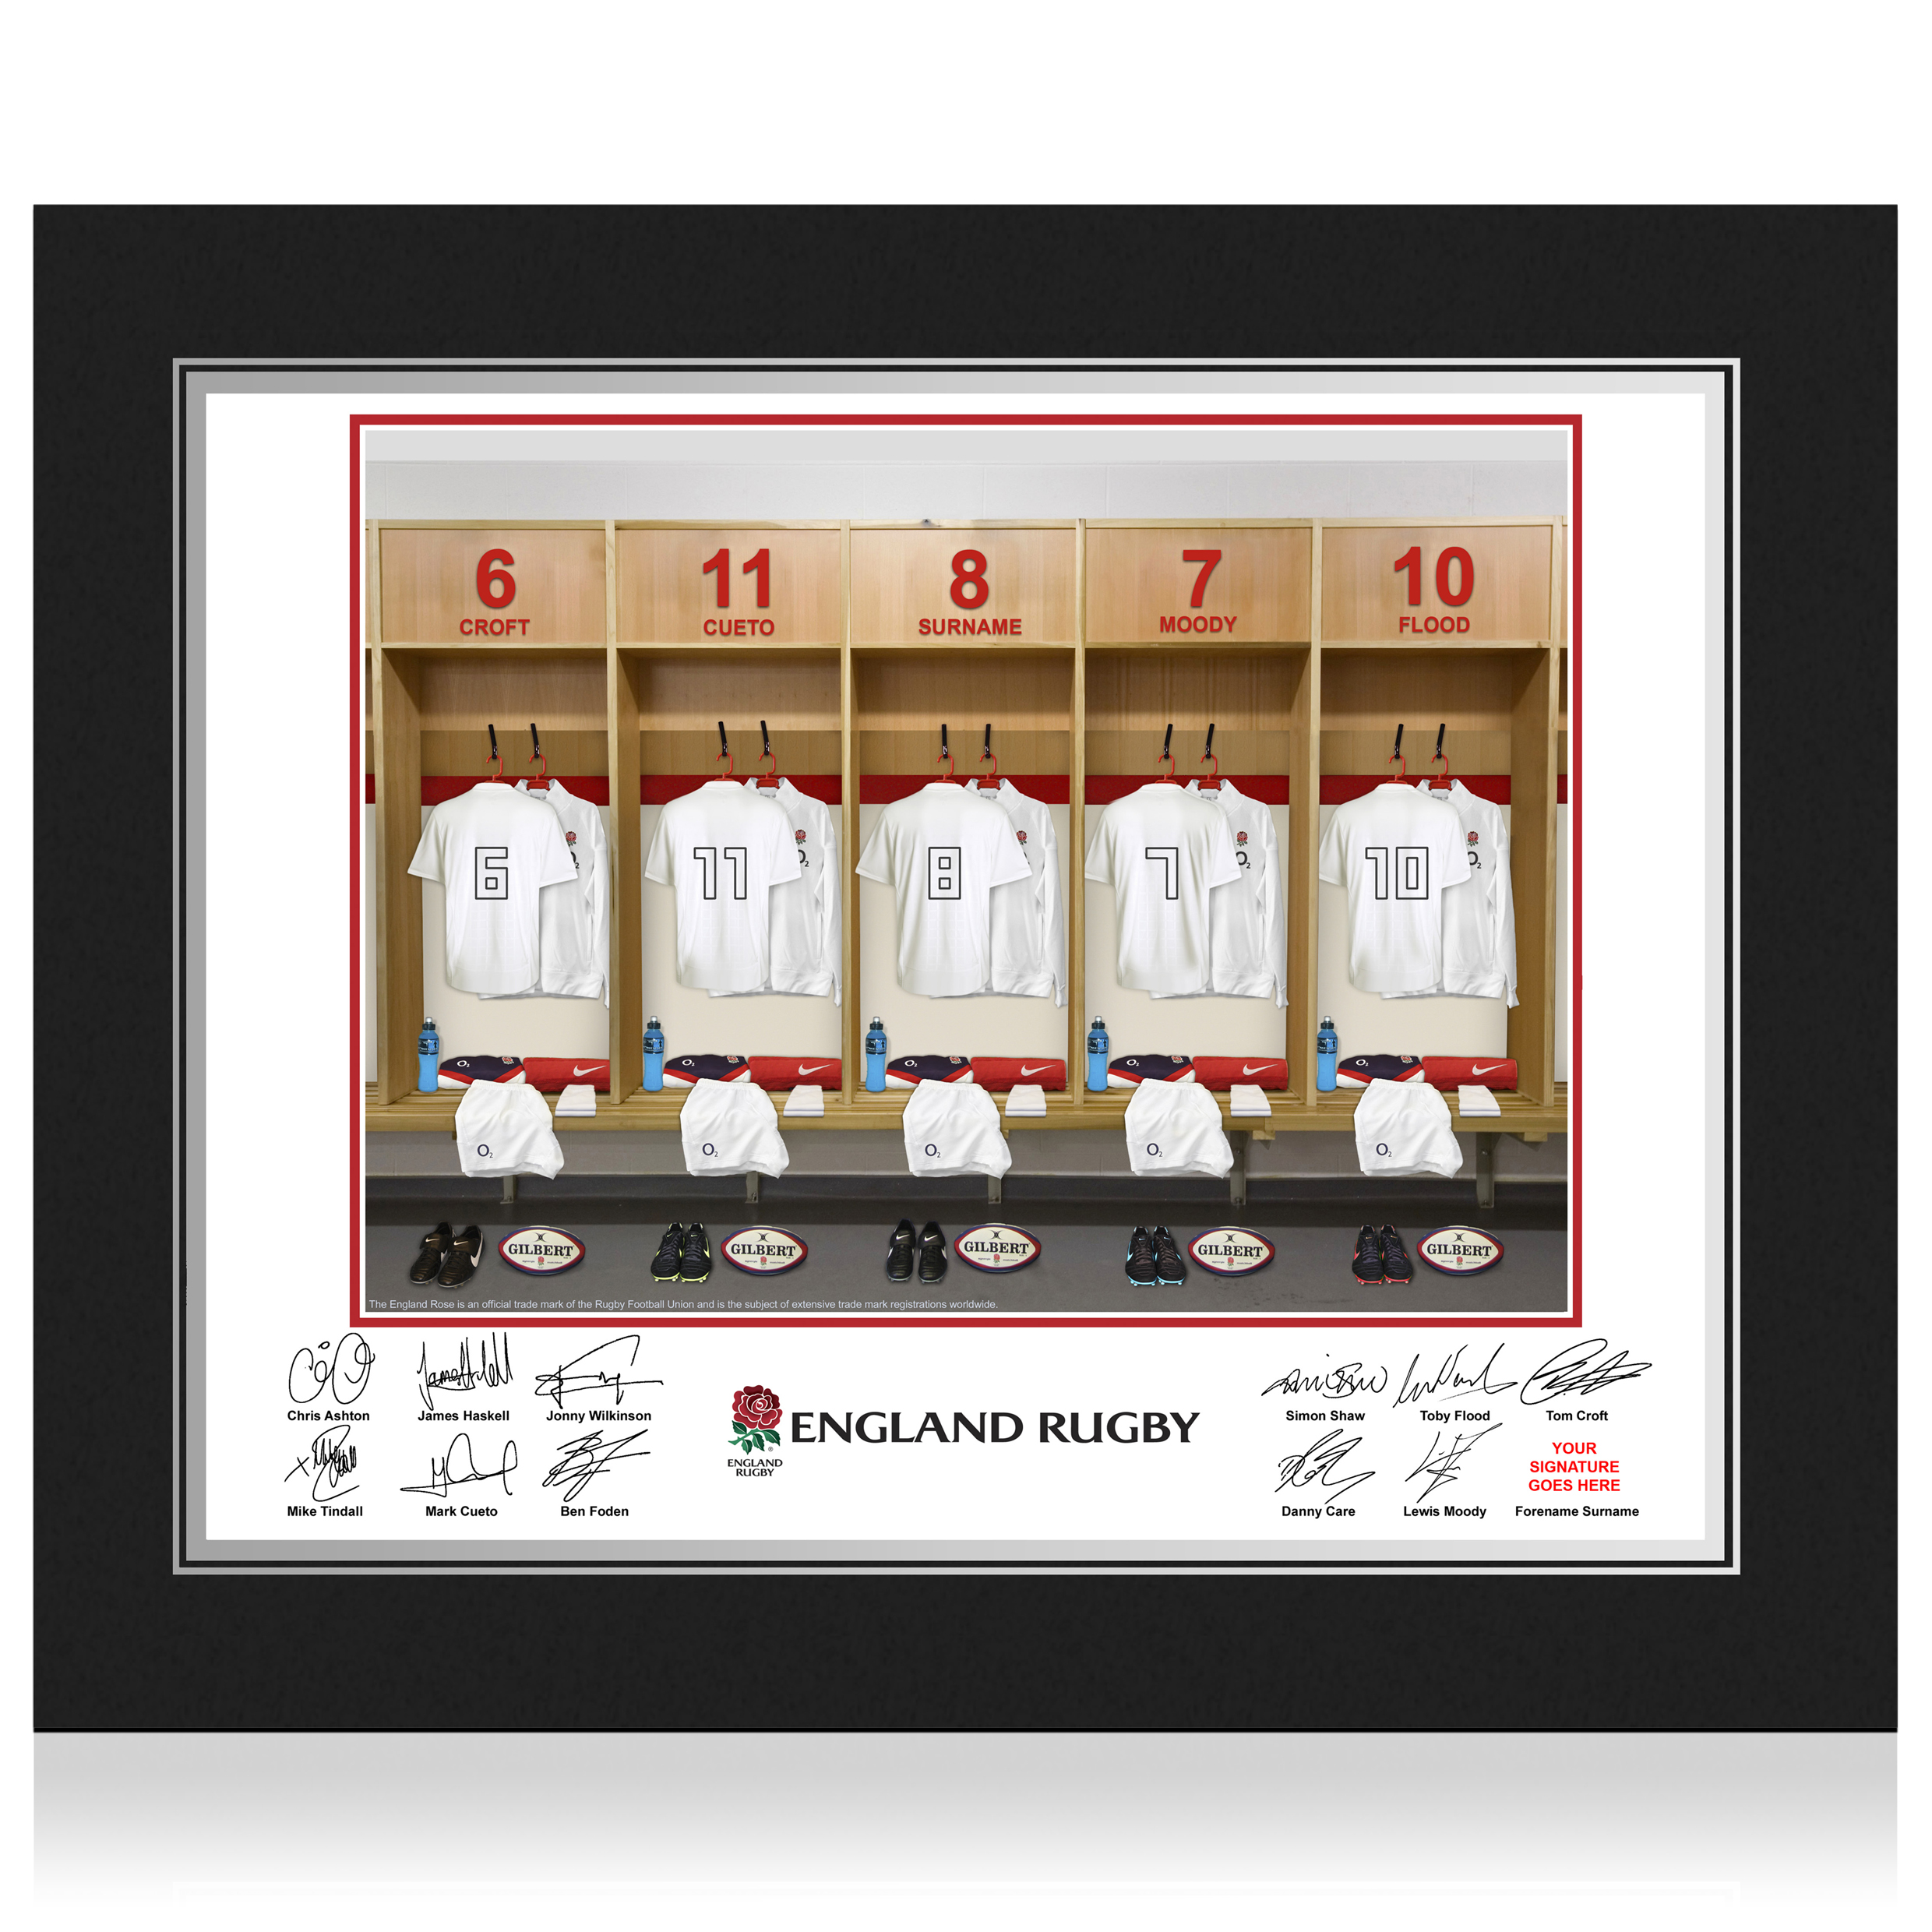 England Rugby Personalised Dressing Room Photo in Presentation Folder